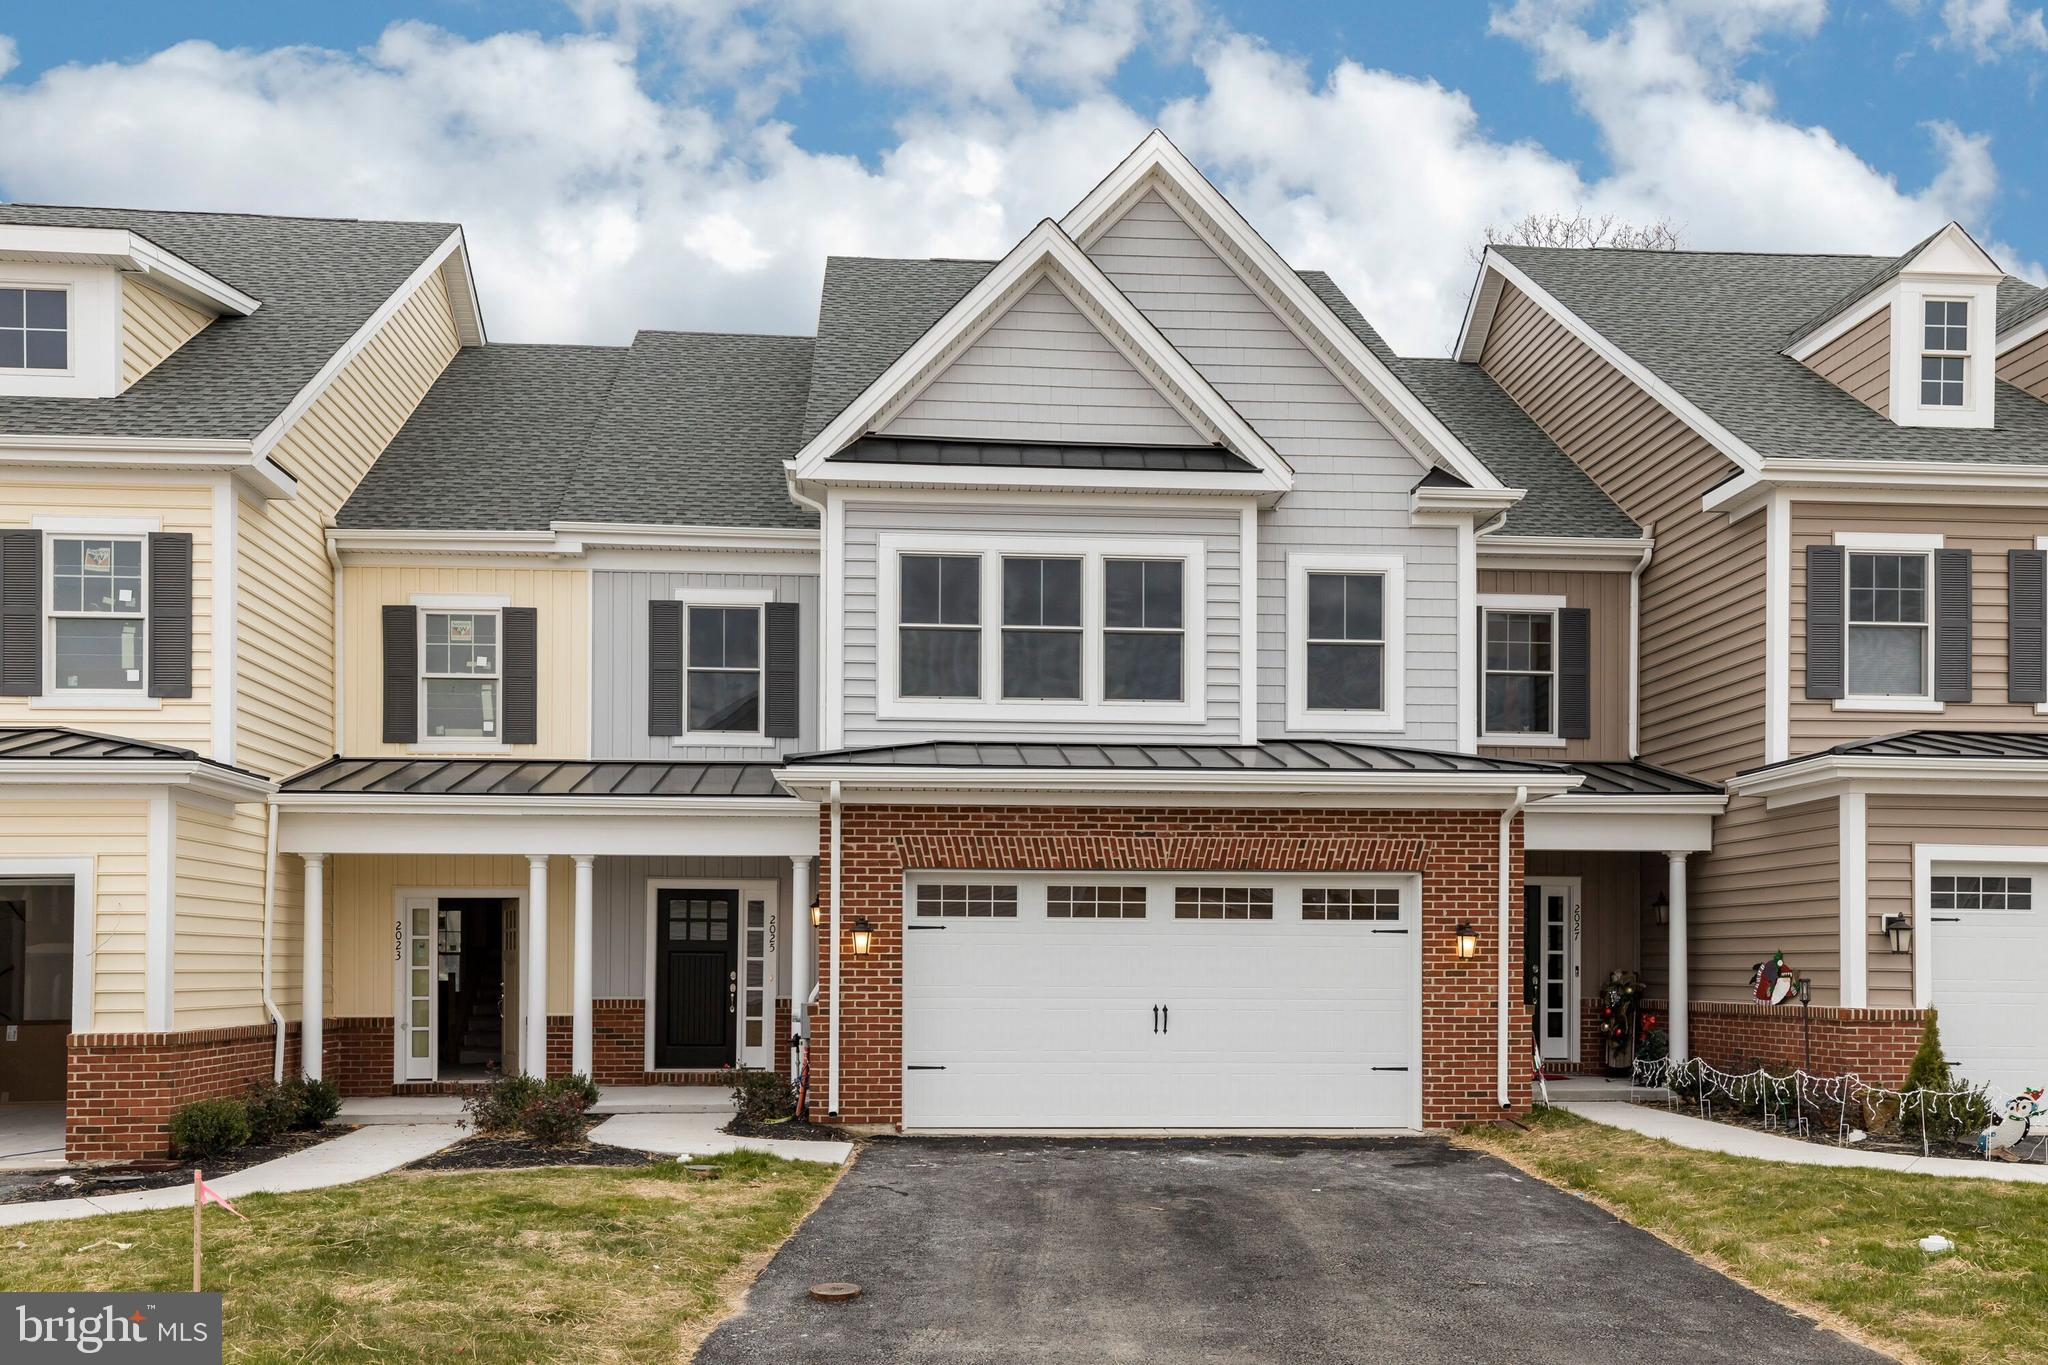 "NEW Construction without the Wait! QUICK DELIVERY HOME - MOVE IN THIS FALL!  Welcome to The Canal District at Fort DuPont by Rockwell Custom. Imagine yourself in a brand new home with a serene water view and access to Delaware City boat launch! Enjoy a morning coffee on your screened-in deck and unwind in the evening around the community trails.  The Newbold floor plan features an open concept on the main floor with 3 bedrooms, 2.5 baths and two-car garage.  Expect excellent attention to detail and designer finishes.  On the main open-concept living level, there are hardwood floors and kitchen with granite counter tops, 42""  cabinets with trim, and soft-close hardware.   Ask about the Limited Time Sales Incentive Happening Now! With future shops, hotels, restaurants, movie theater and expanded marina, Fort DuPont is the new sought after Riverfront in New Castle County, Delaware, and the low-maintenance lifestyle you have always craved.  Centrally located near Christiana shopping and dining, Wilmington, Newark, Middletown, Dover and Delaware beaches.  This is a to-be-built home. Photos are for marketing purposes only. The Sales Center is open Monday 2-6pm, Tuesday & Friday 11am-6pm, Saturday & Sunday 12-5pm. Call 302-898-2010 to schedule an appointment. GPS: 260  New Castle Avenue. Delaware City, DE 19706."